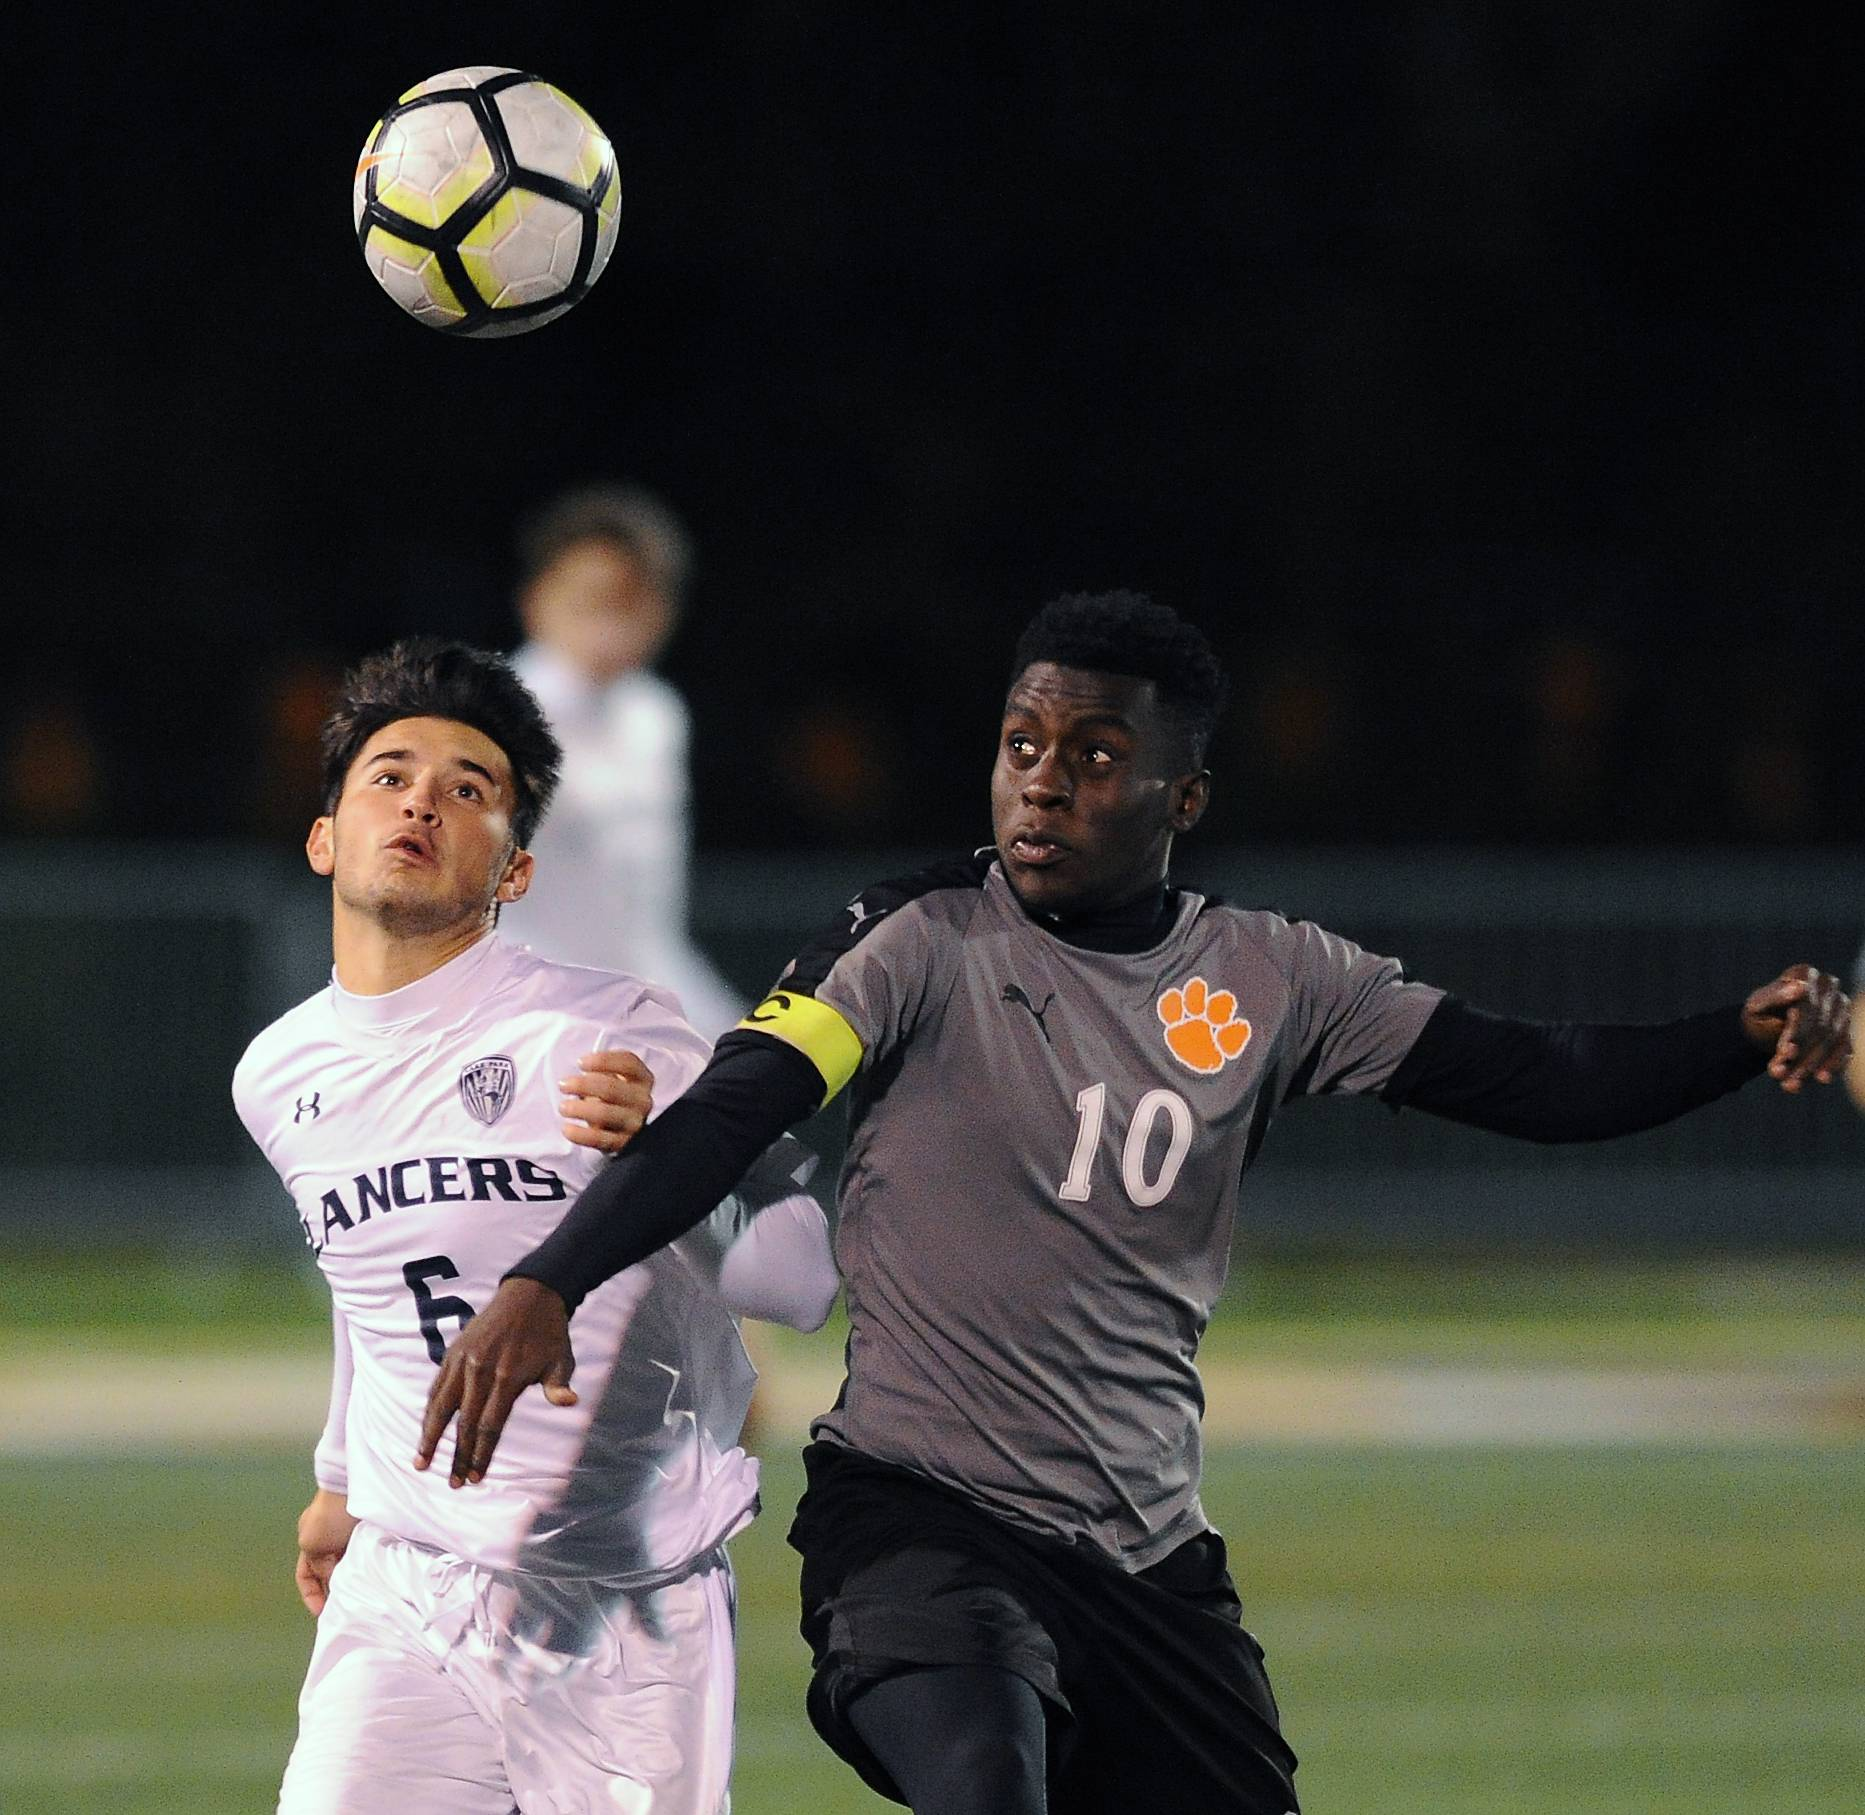 Lake Park's Andrew Eliopoulos battles with Wheaton Warrenville South's Sumani Husseini in the first period of play at Wheaton Warrenville South High School on Thursday.